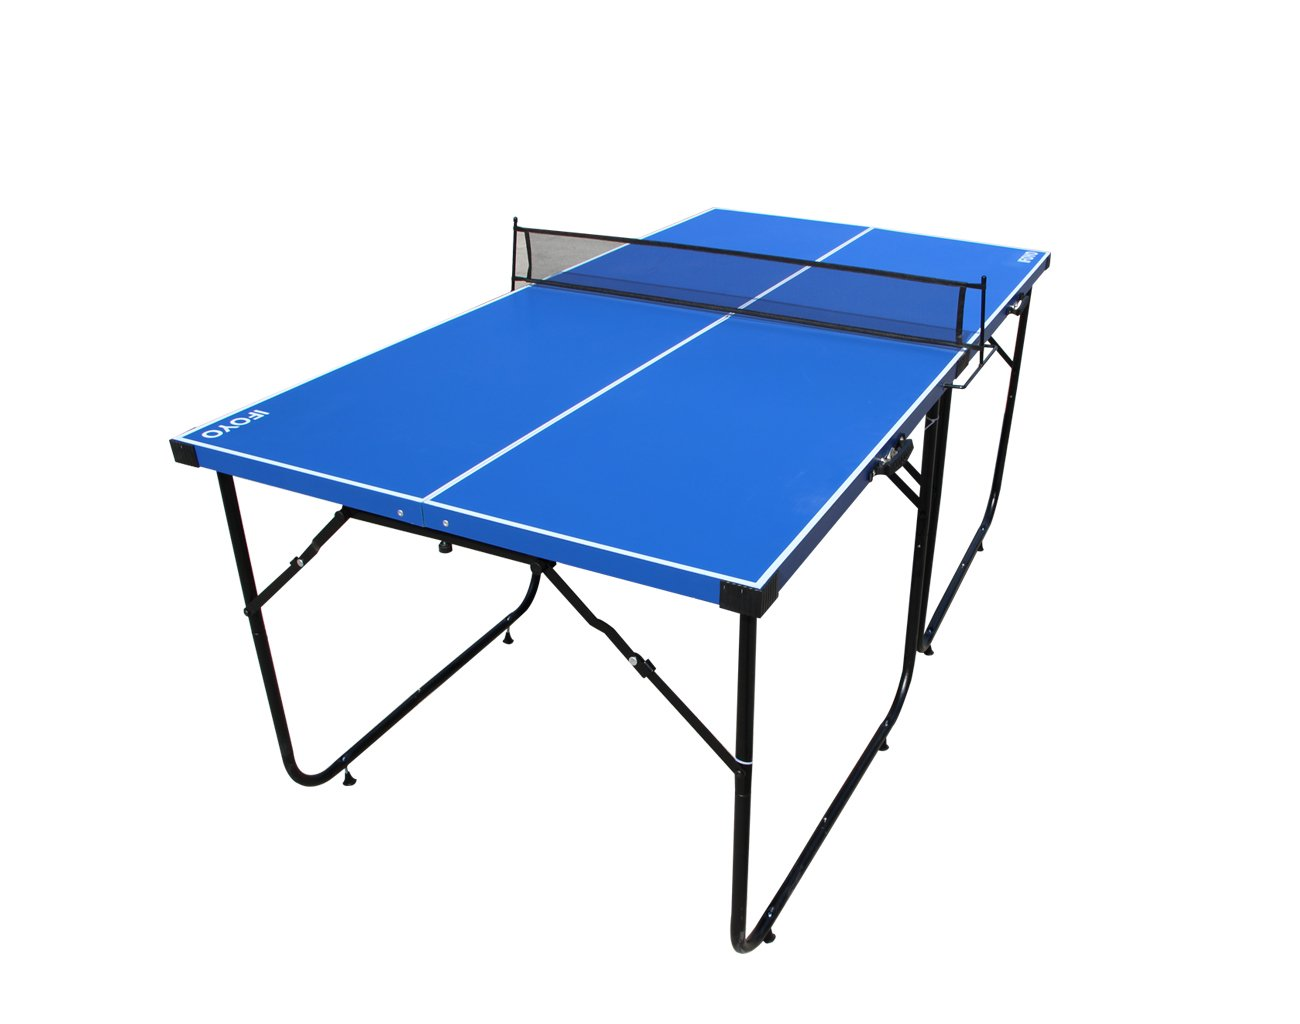 Table Tennis Table, IFOYO 6ft Midsize Ping Pong Table 4-Piece Folding Portable Indoor Outdoor Tennis Table with Net Set for Adults, Kids, No Assembly Needed, Blue